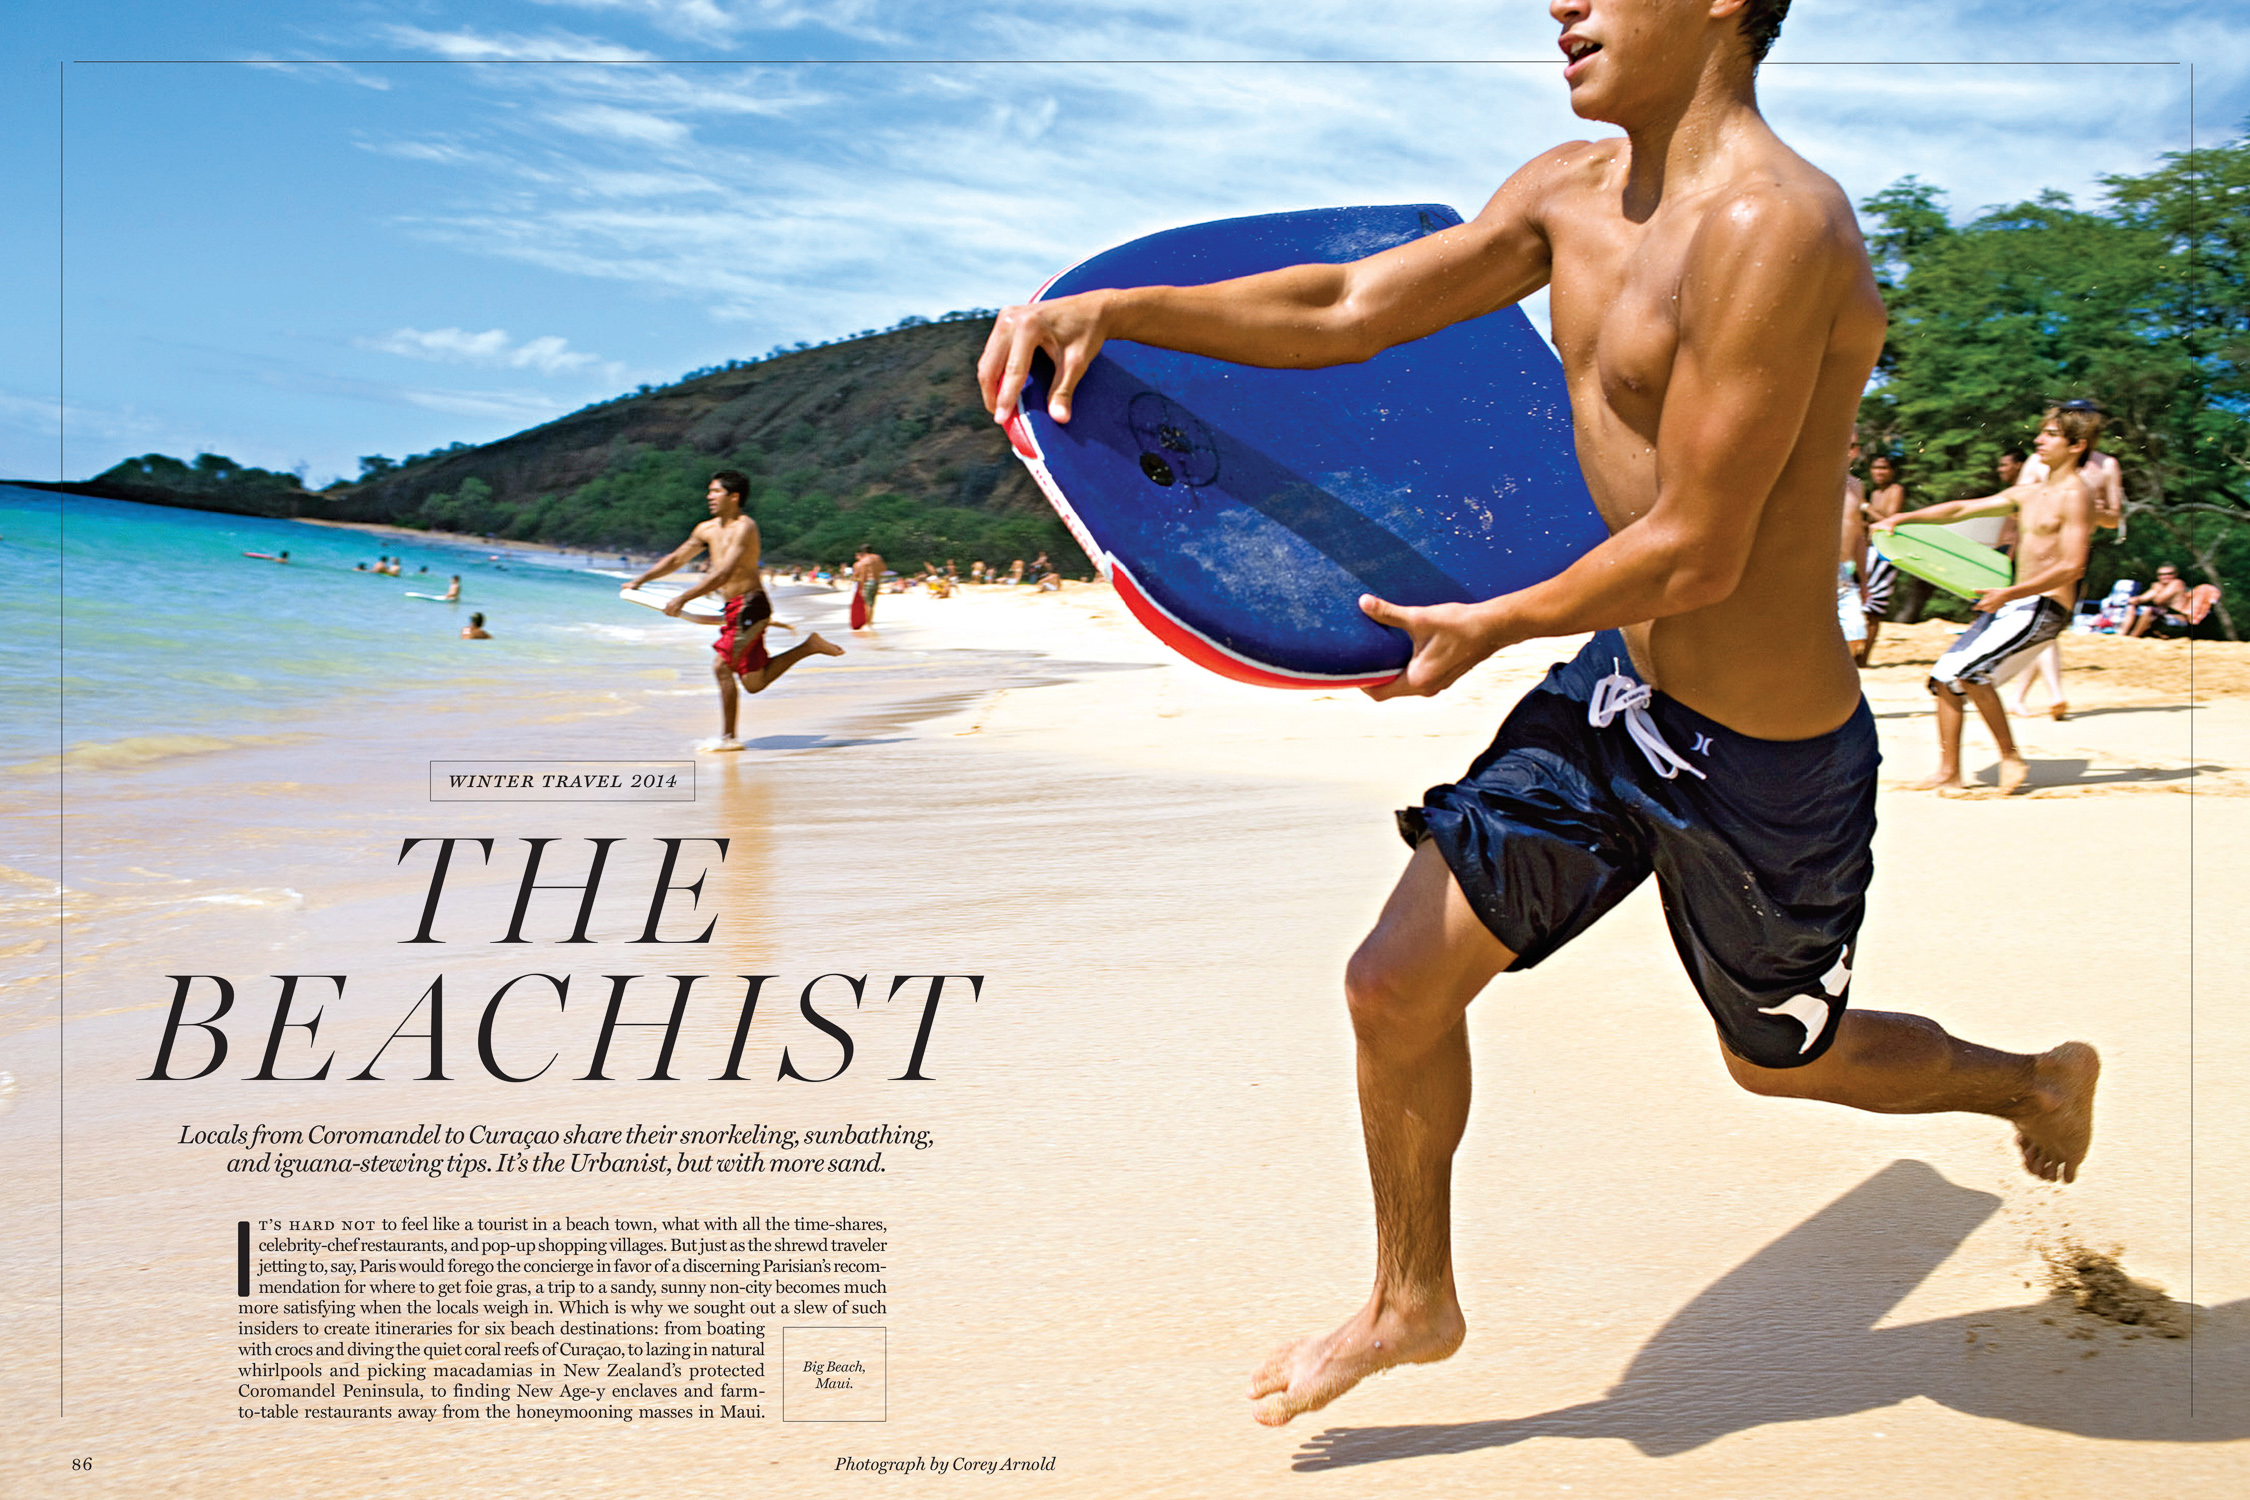 Bodyboarding on Big Beach, Maui, Hawaii.  New York Magazine, October 17, 2014 Photo: Corey Arnold